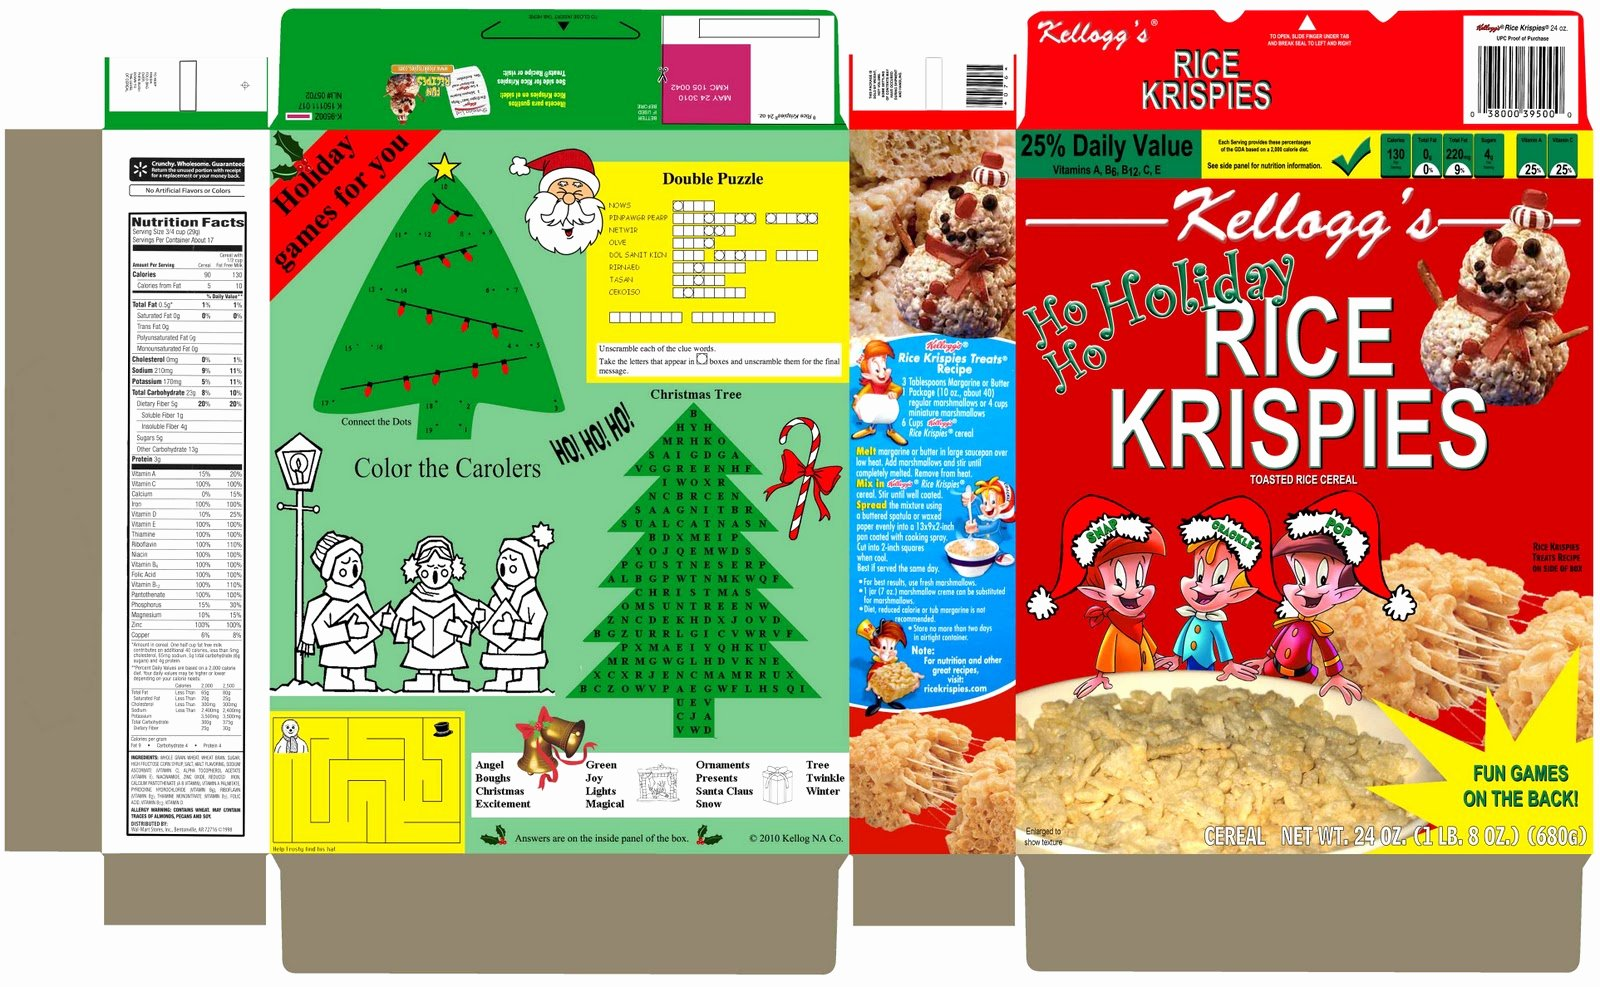 Cereal Box Design Template Inspirational My Art School Designs 3d Cereal Box Design